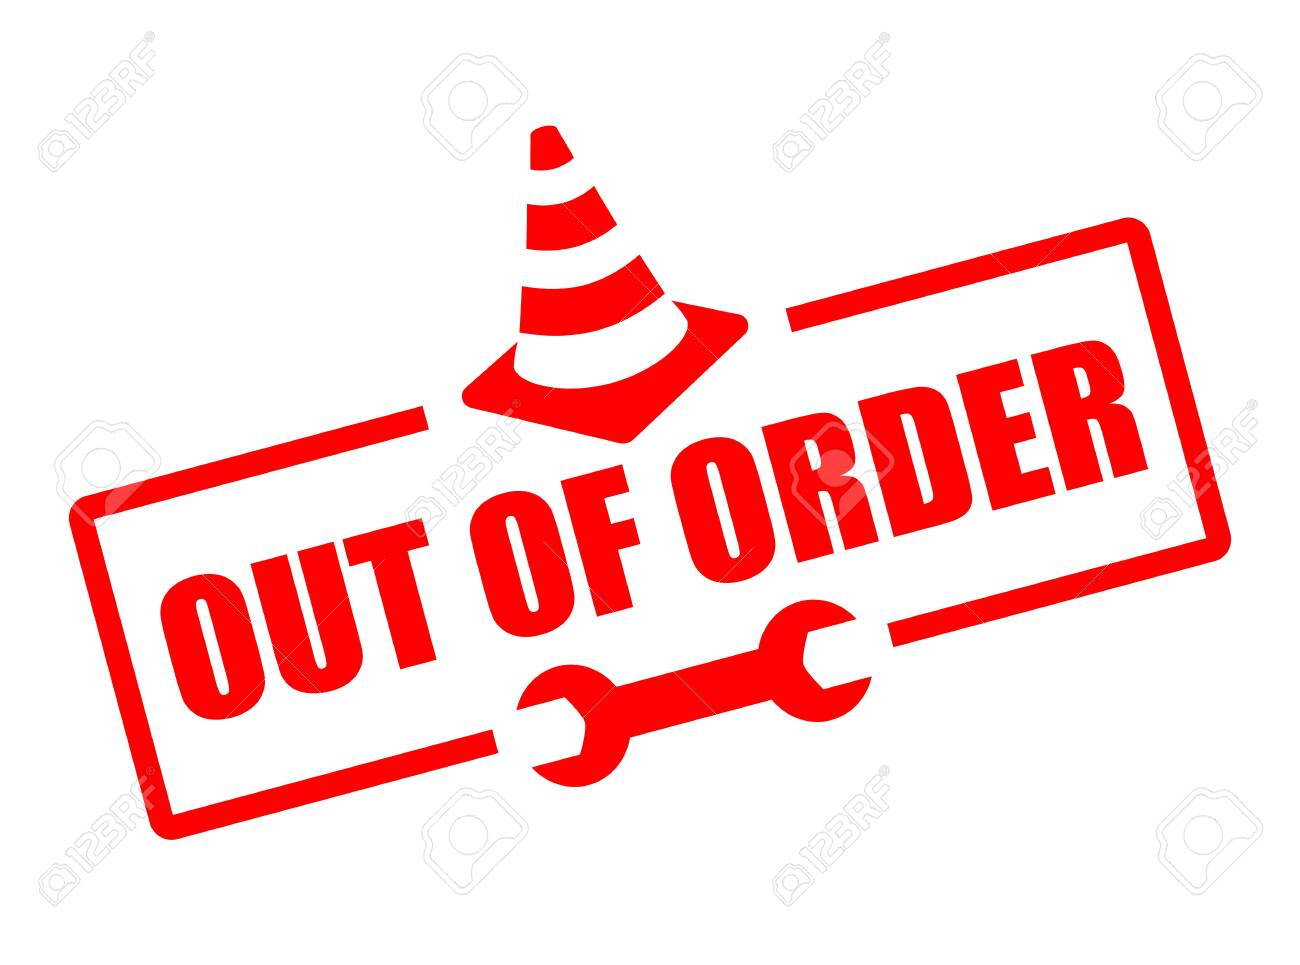 Out of order vector sign isolated on white background - 134169953